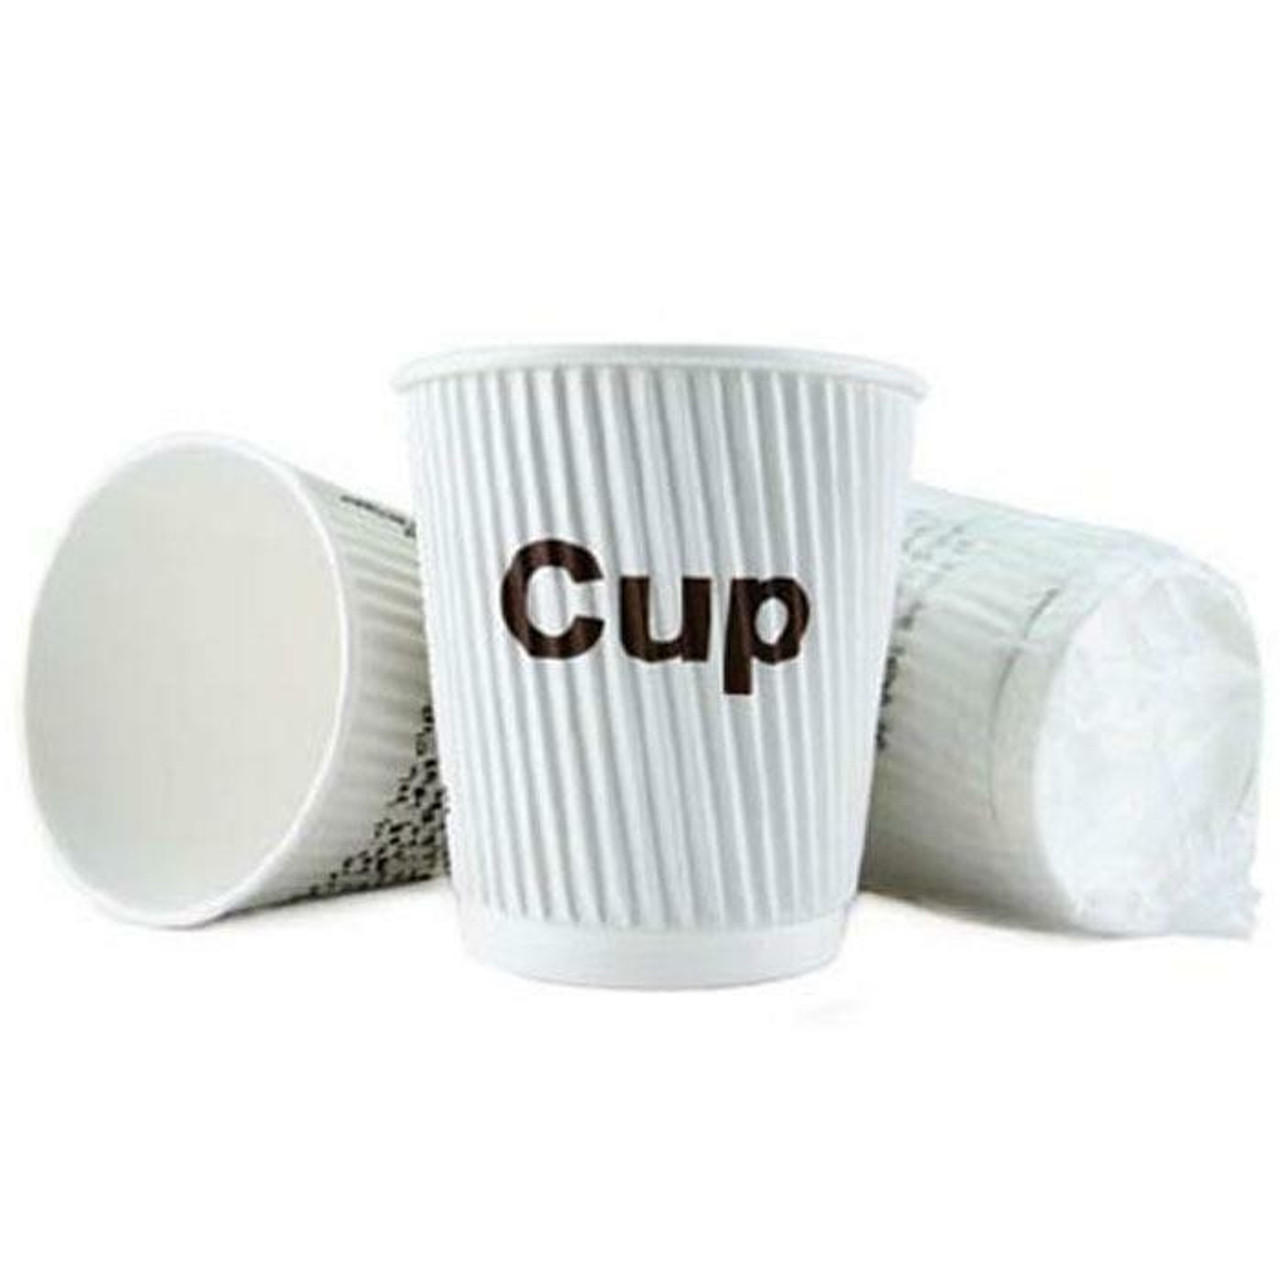 Oxford Super Blend by Ganesh Mills OXFORD GANESH 9 OZ INDIVIDUALLY WRAPPED RIPPLED INSULATED COFFEE CUPS 900 PER CASE